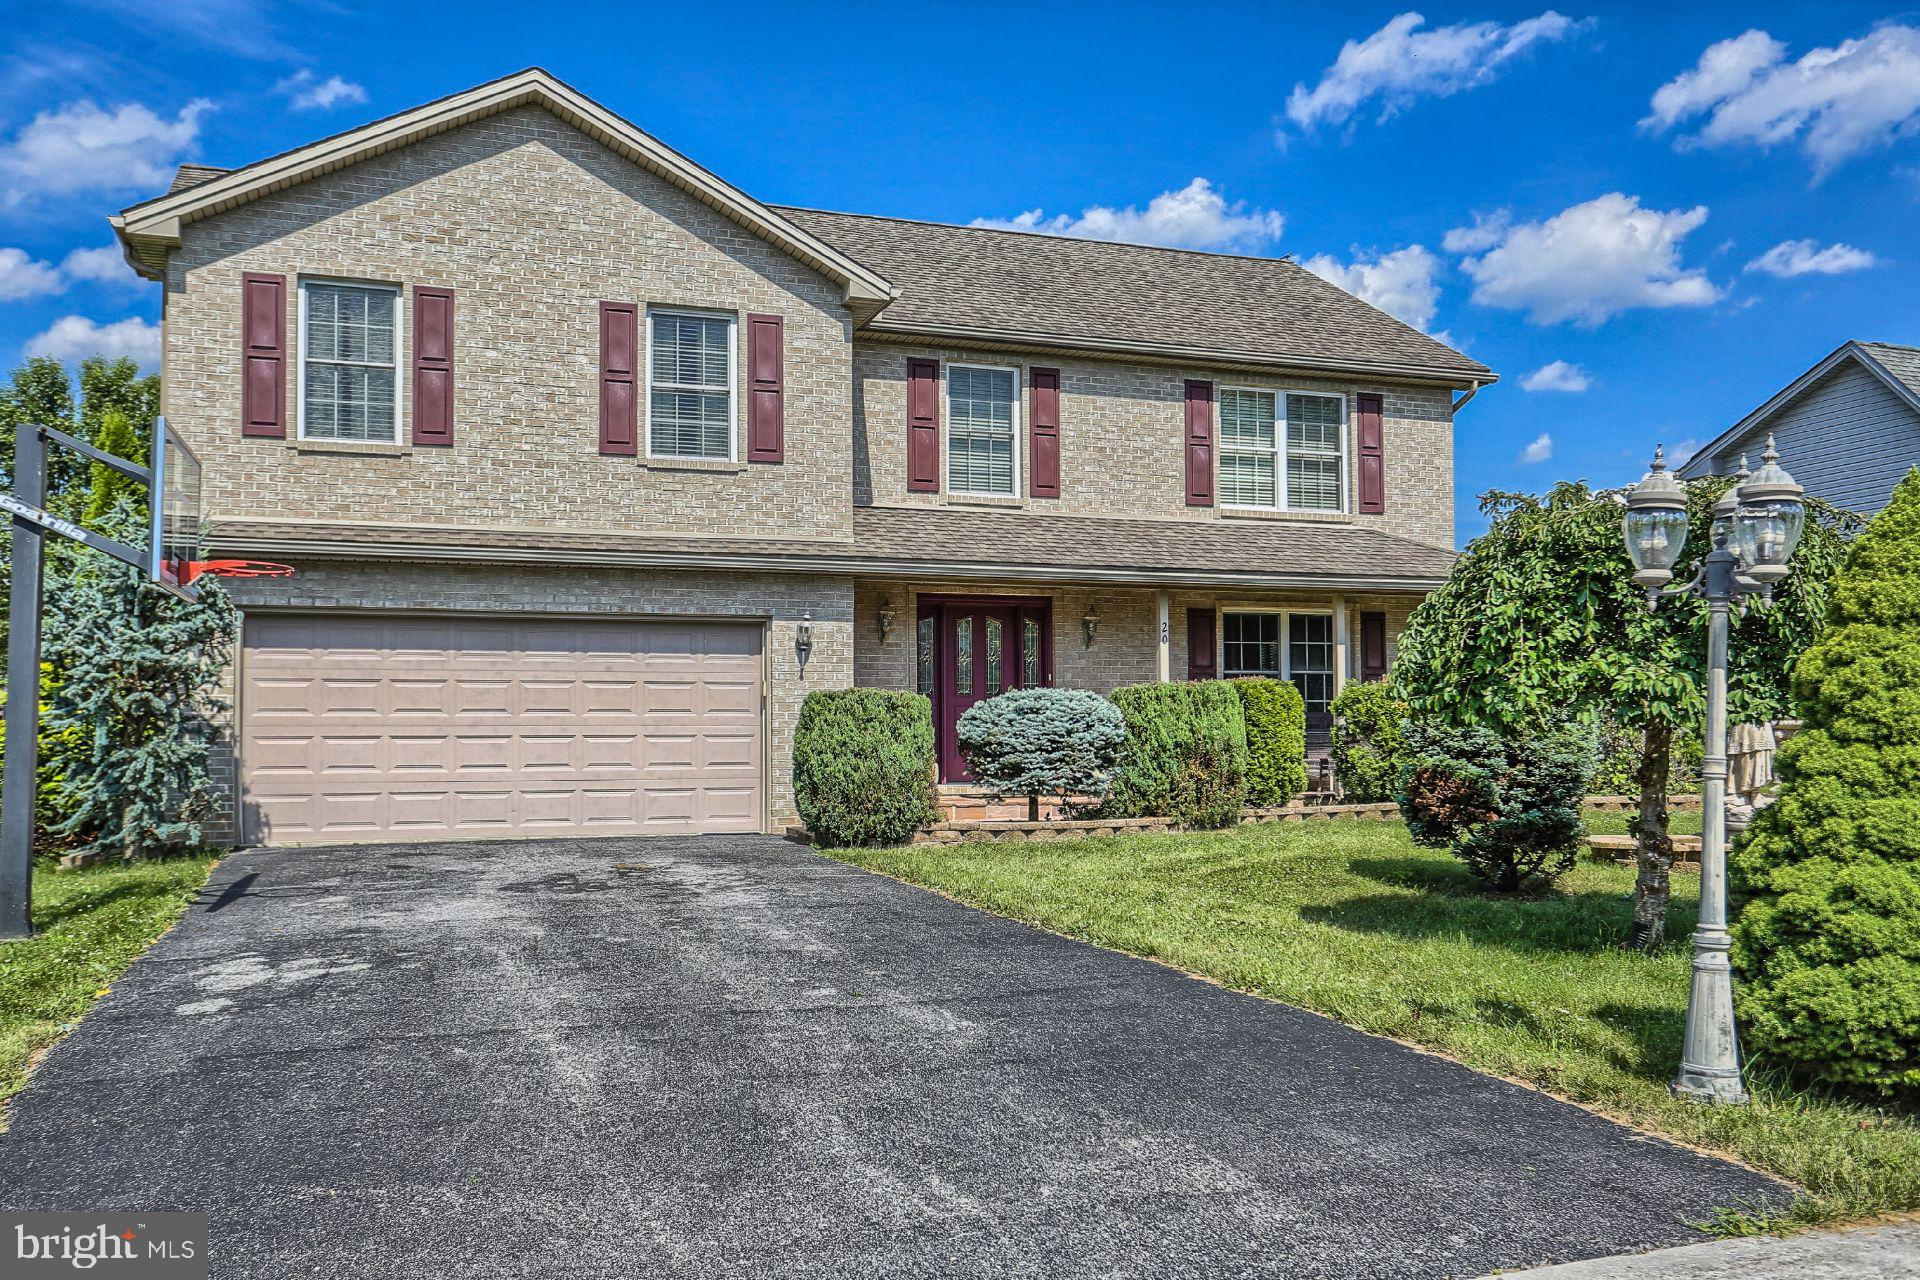 20 Westgate Dr. WESTGATE, MOUNT HOLLY SPRINGS, PA 17065